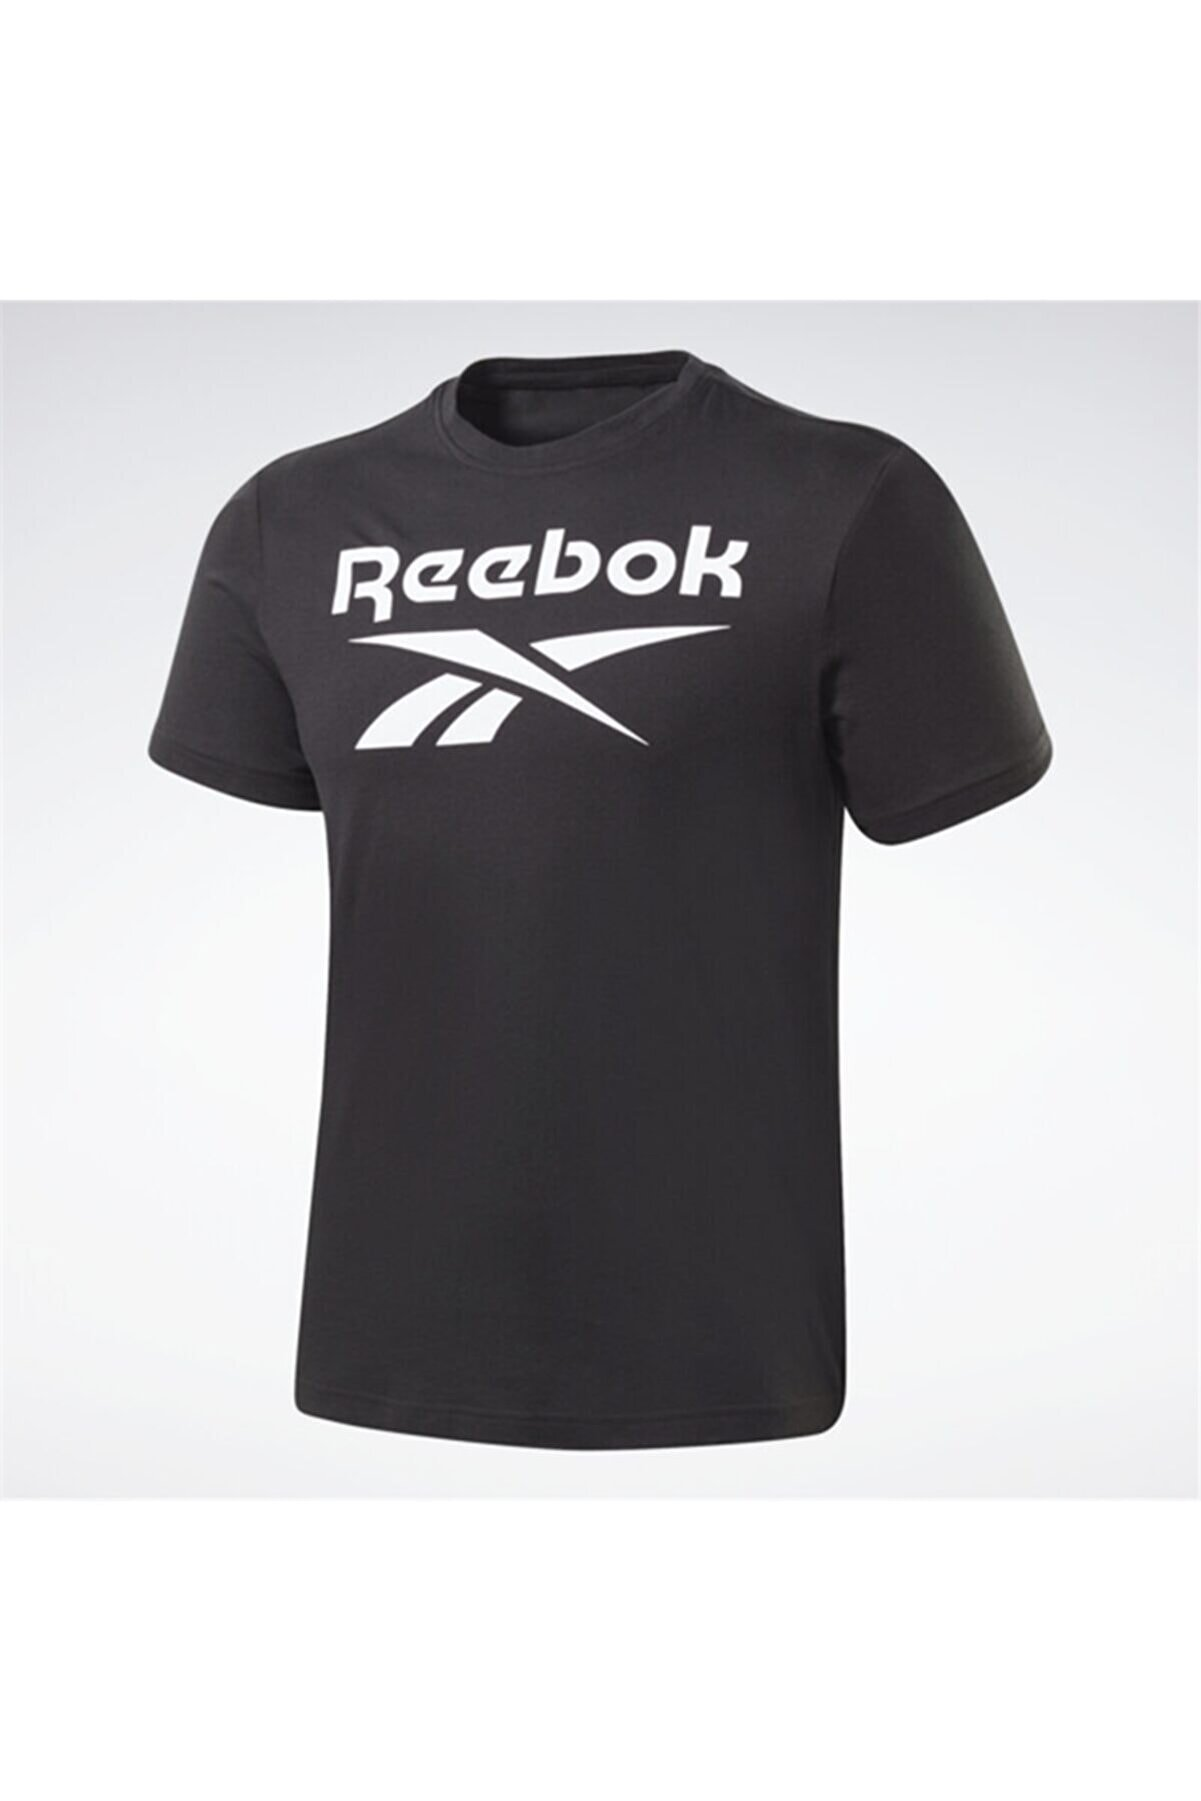 Reebok Fp9150 Gs Stacked T